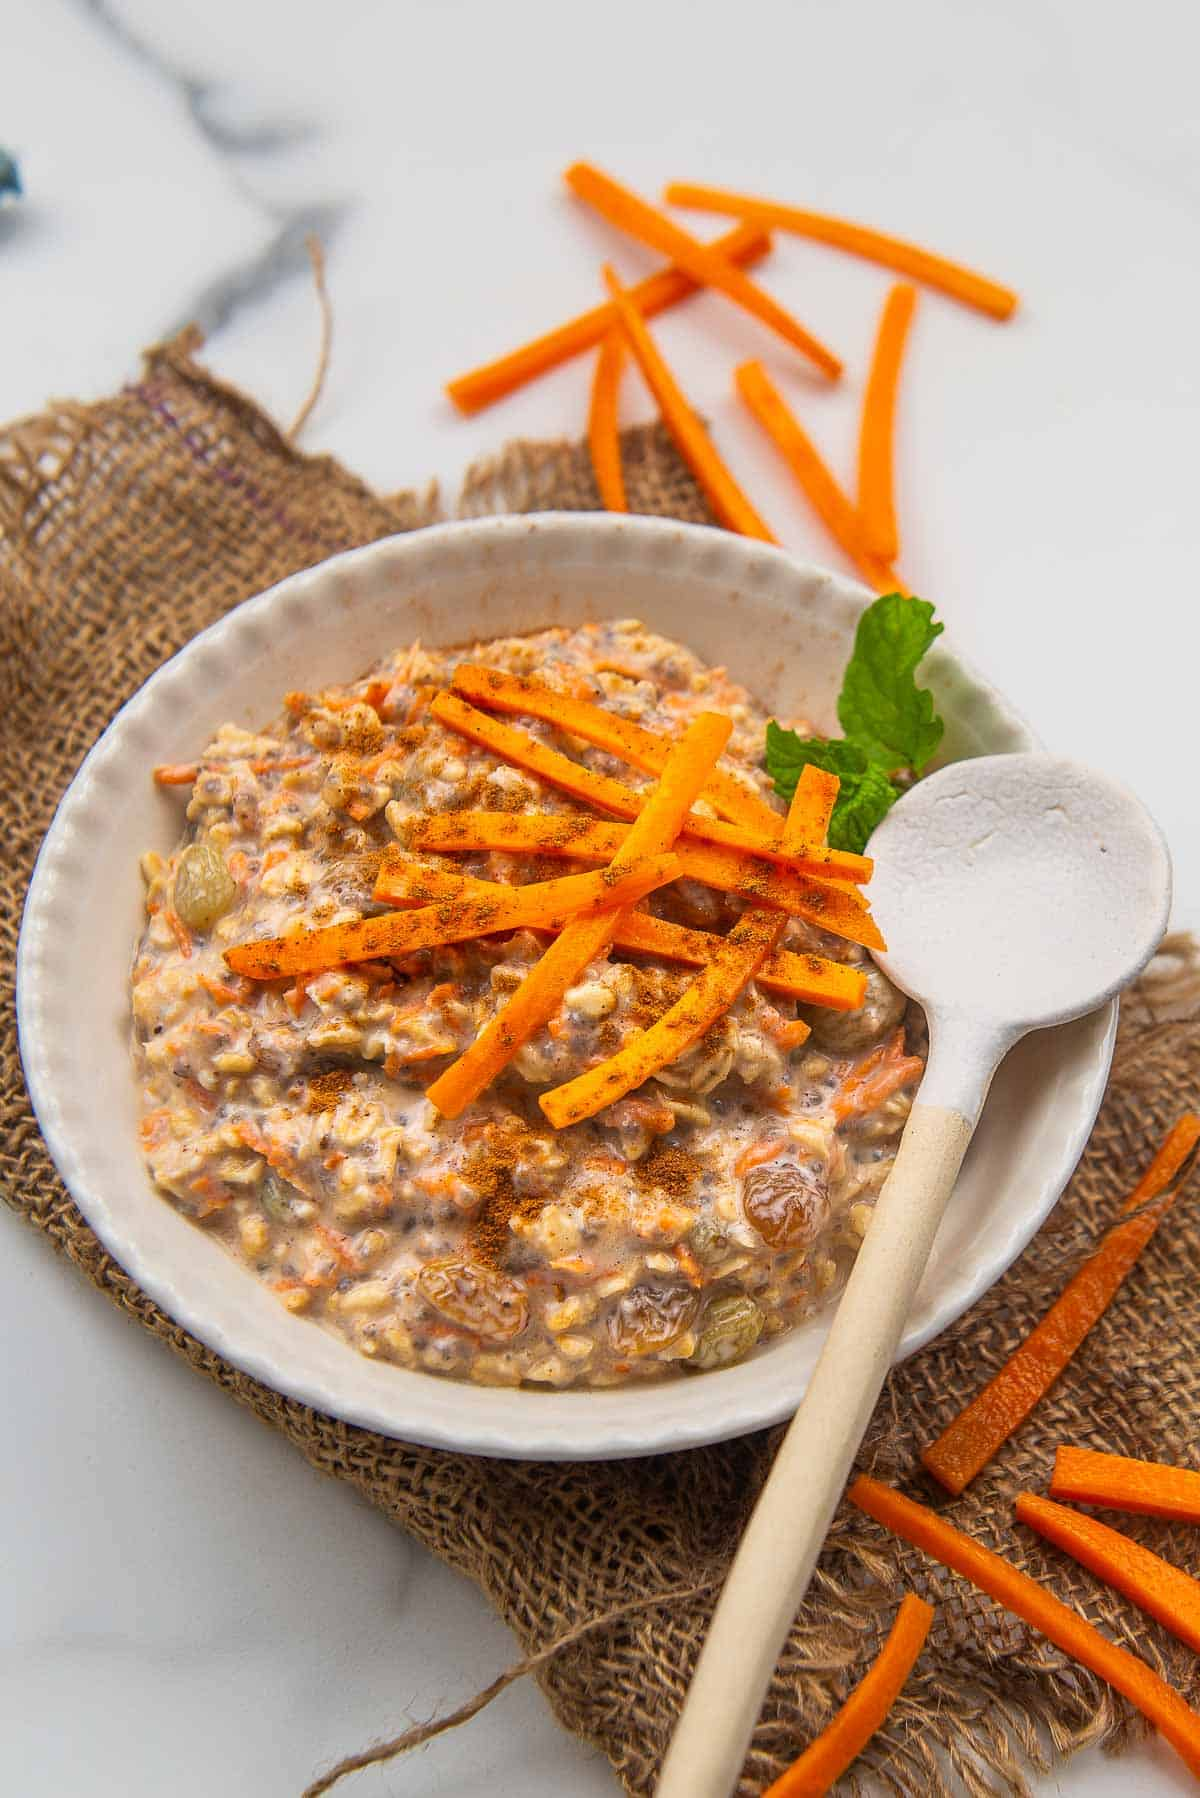 Carrot cake overnight oats served in a bowl.